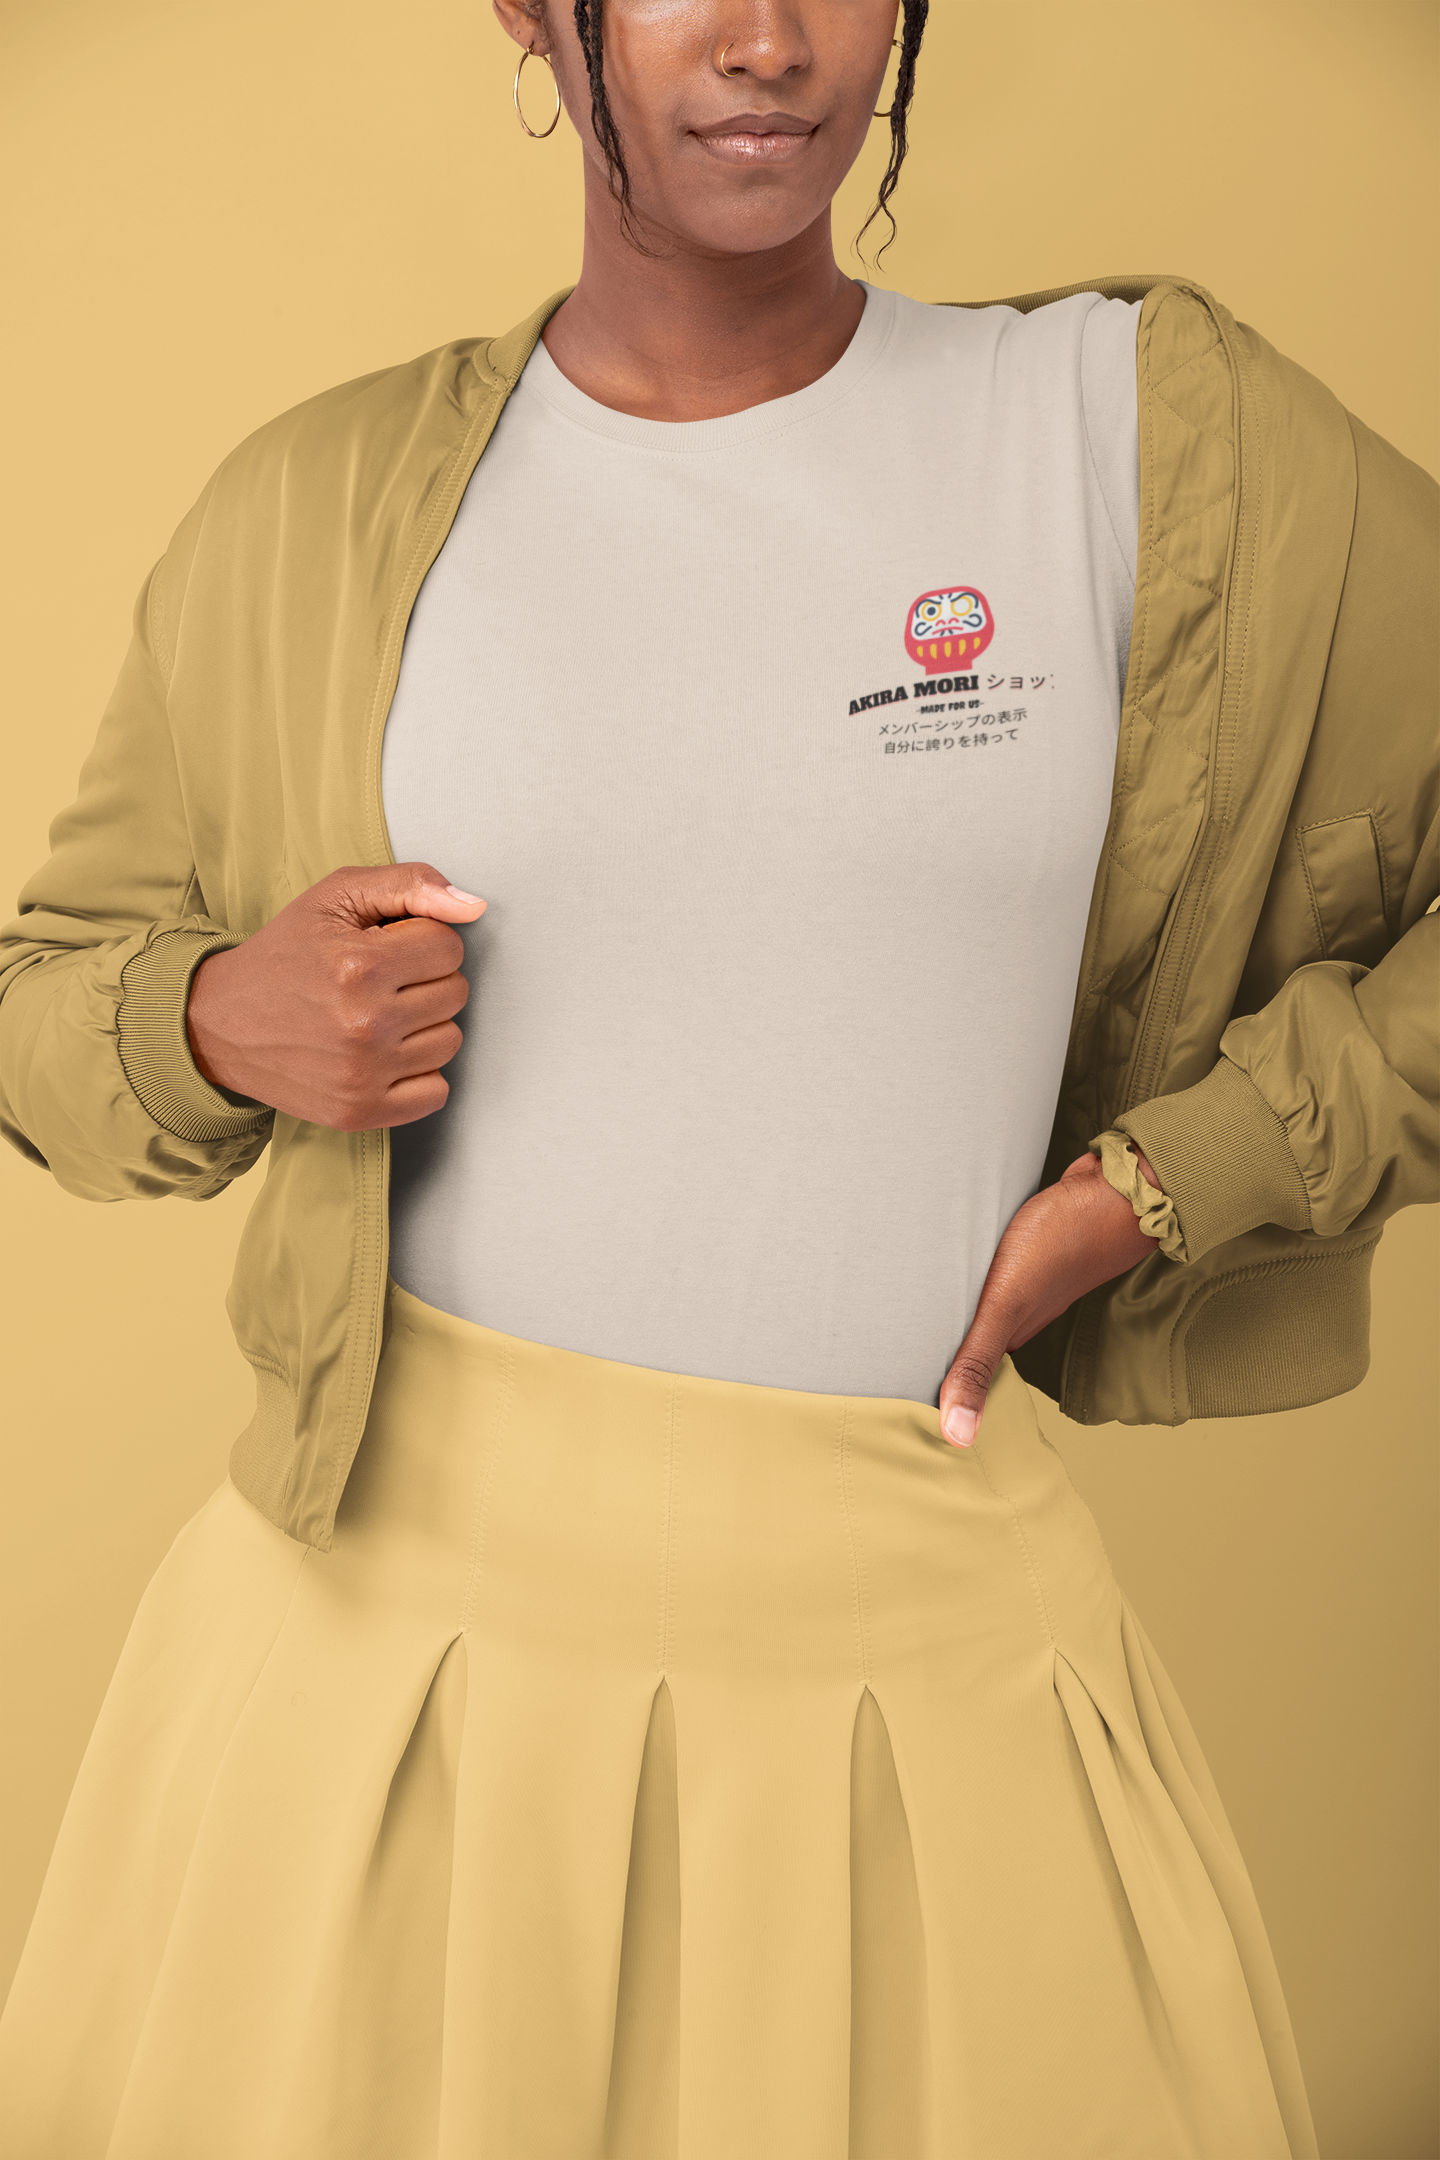 t shirt mockup of a woman in a monochromatic outfit posing at a studio 32795